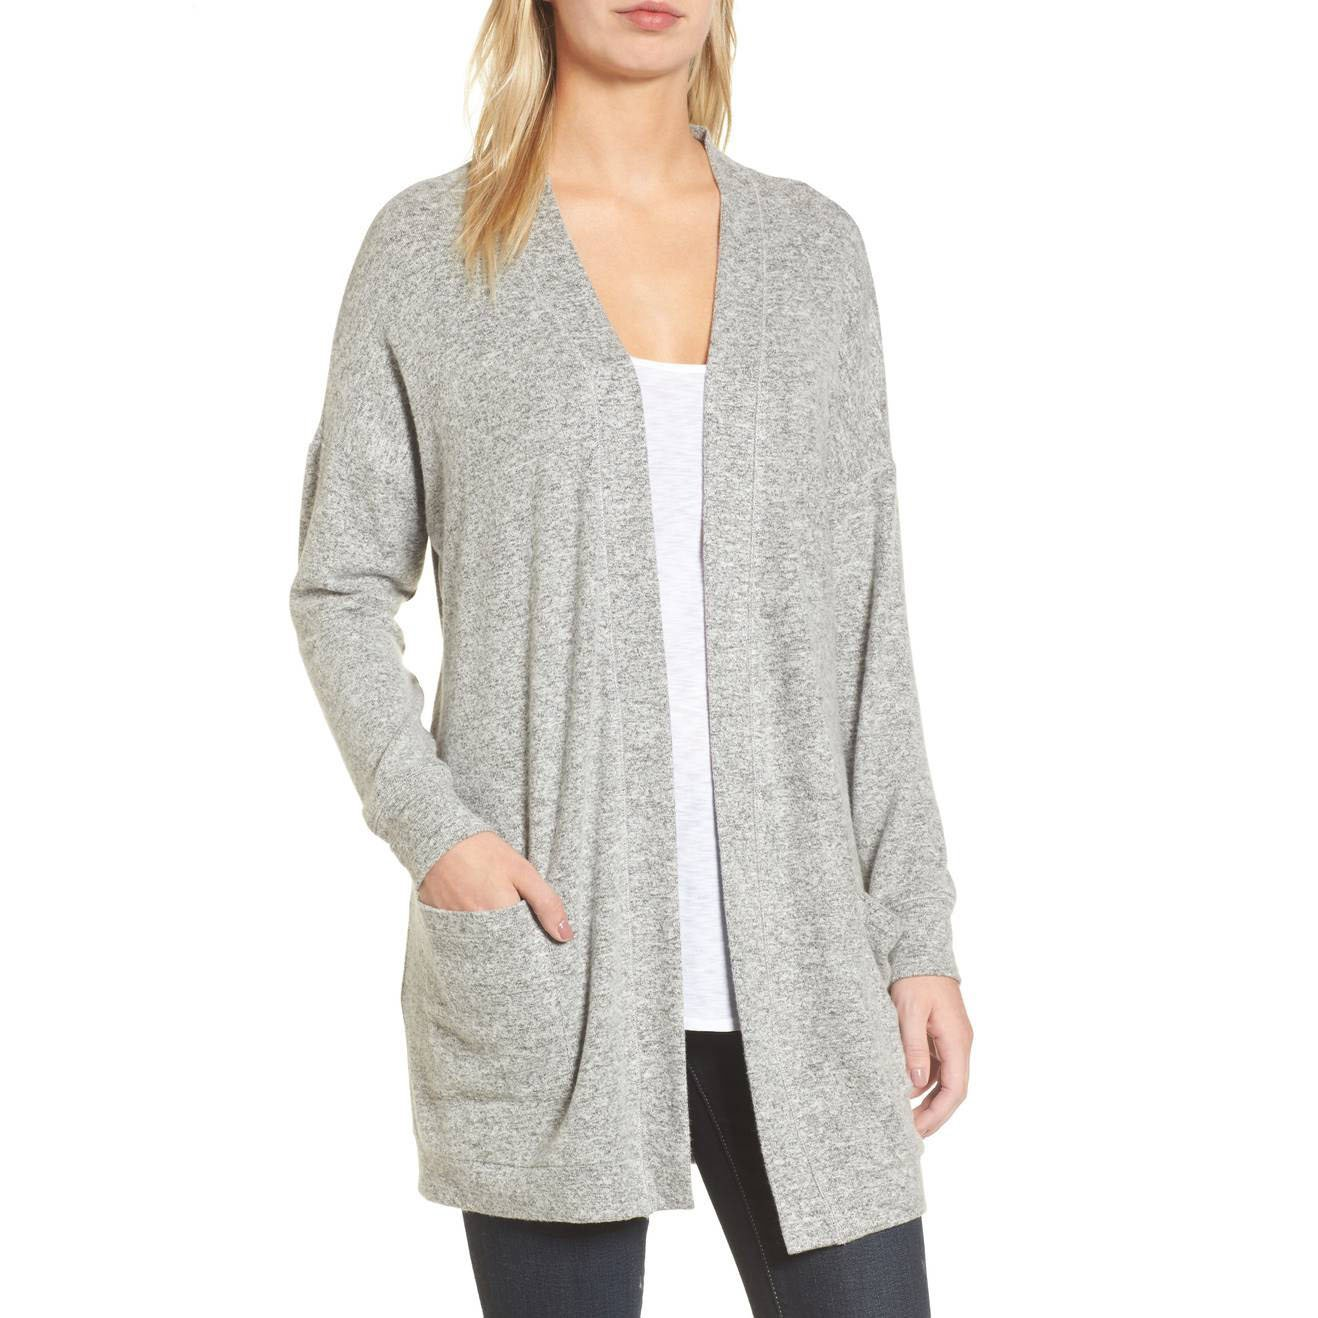 Gibson fleece cardigan